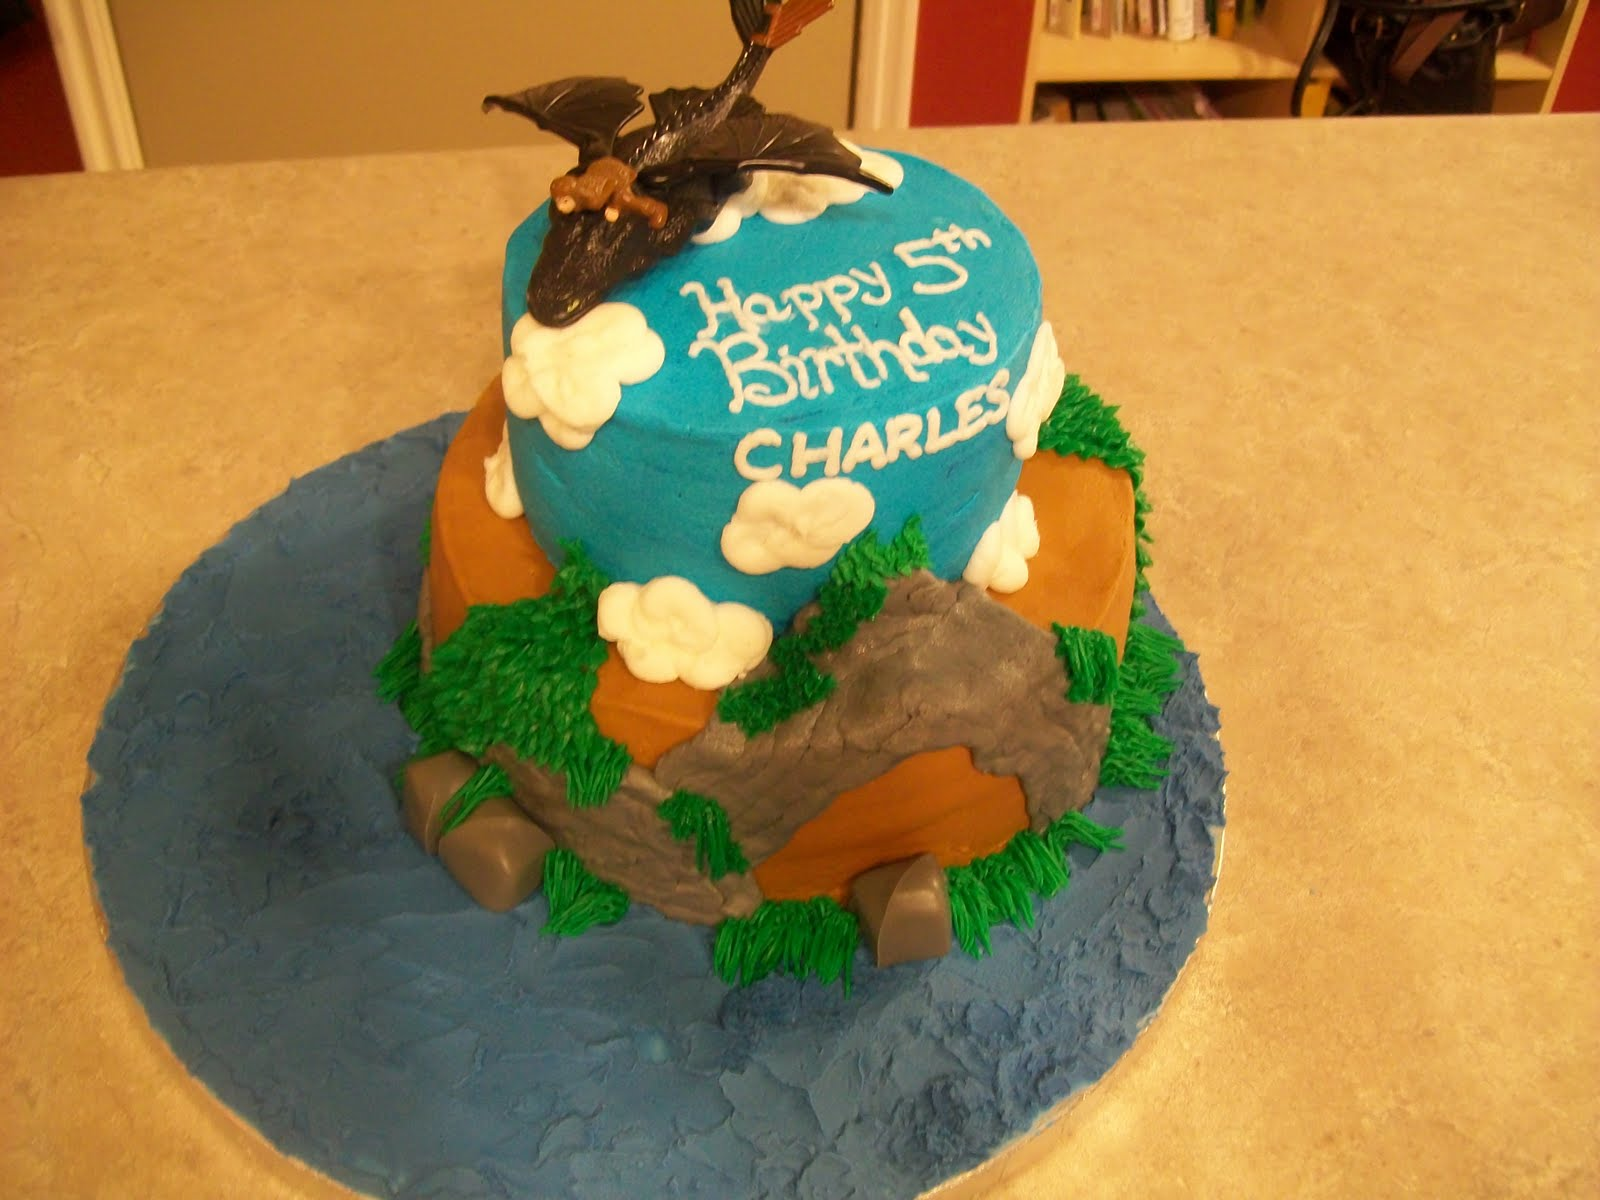 Grateful for the ride how to train your dragon cake how to train your dragon cake ccuart Choice Image